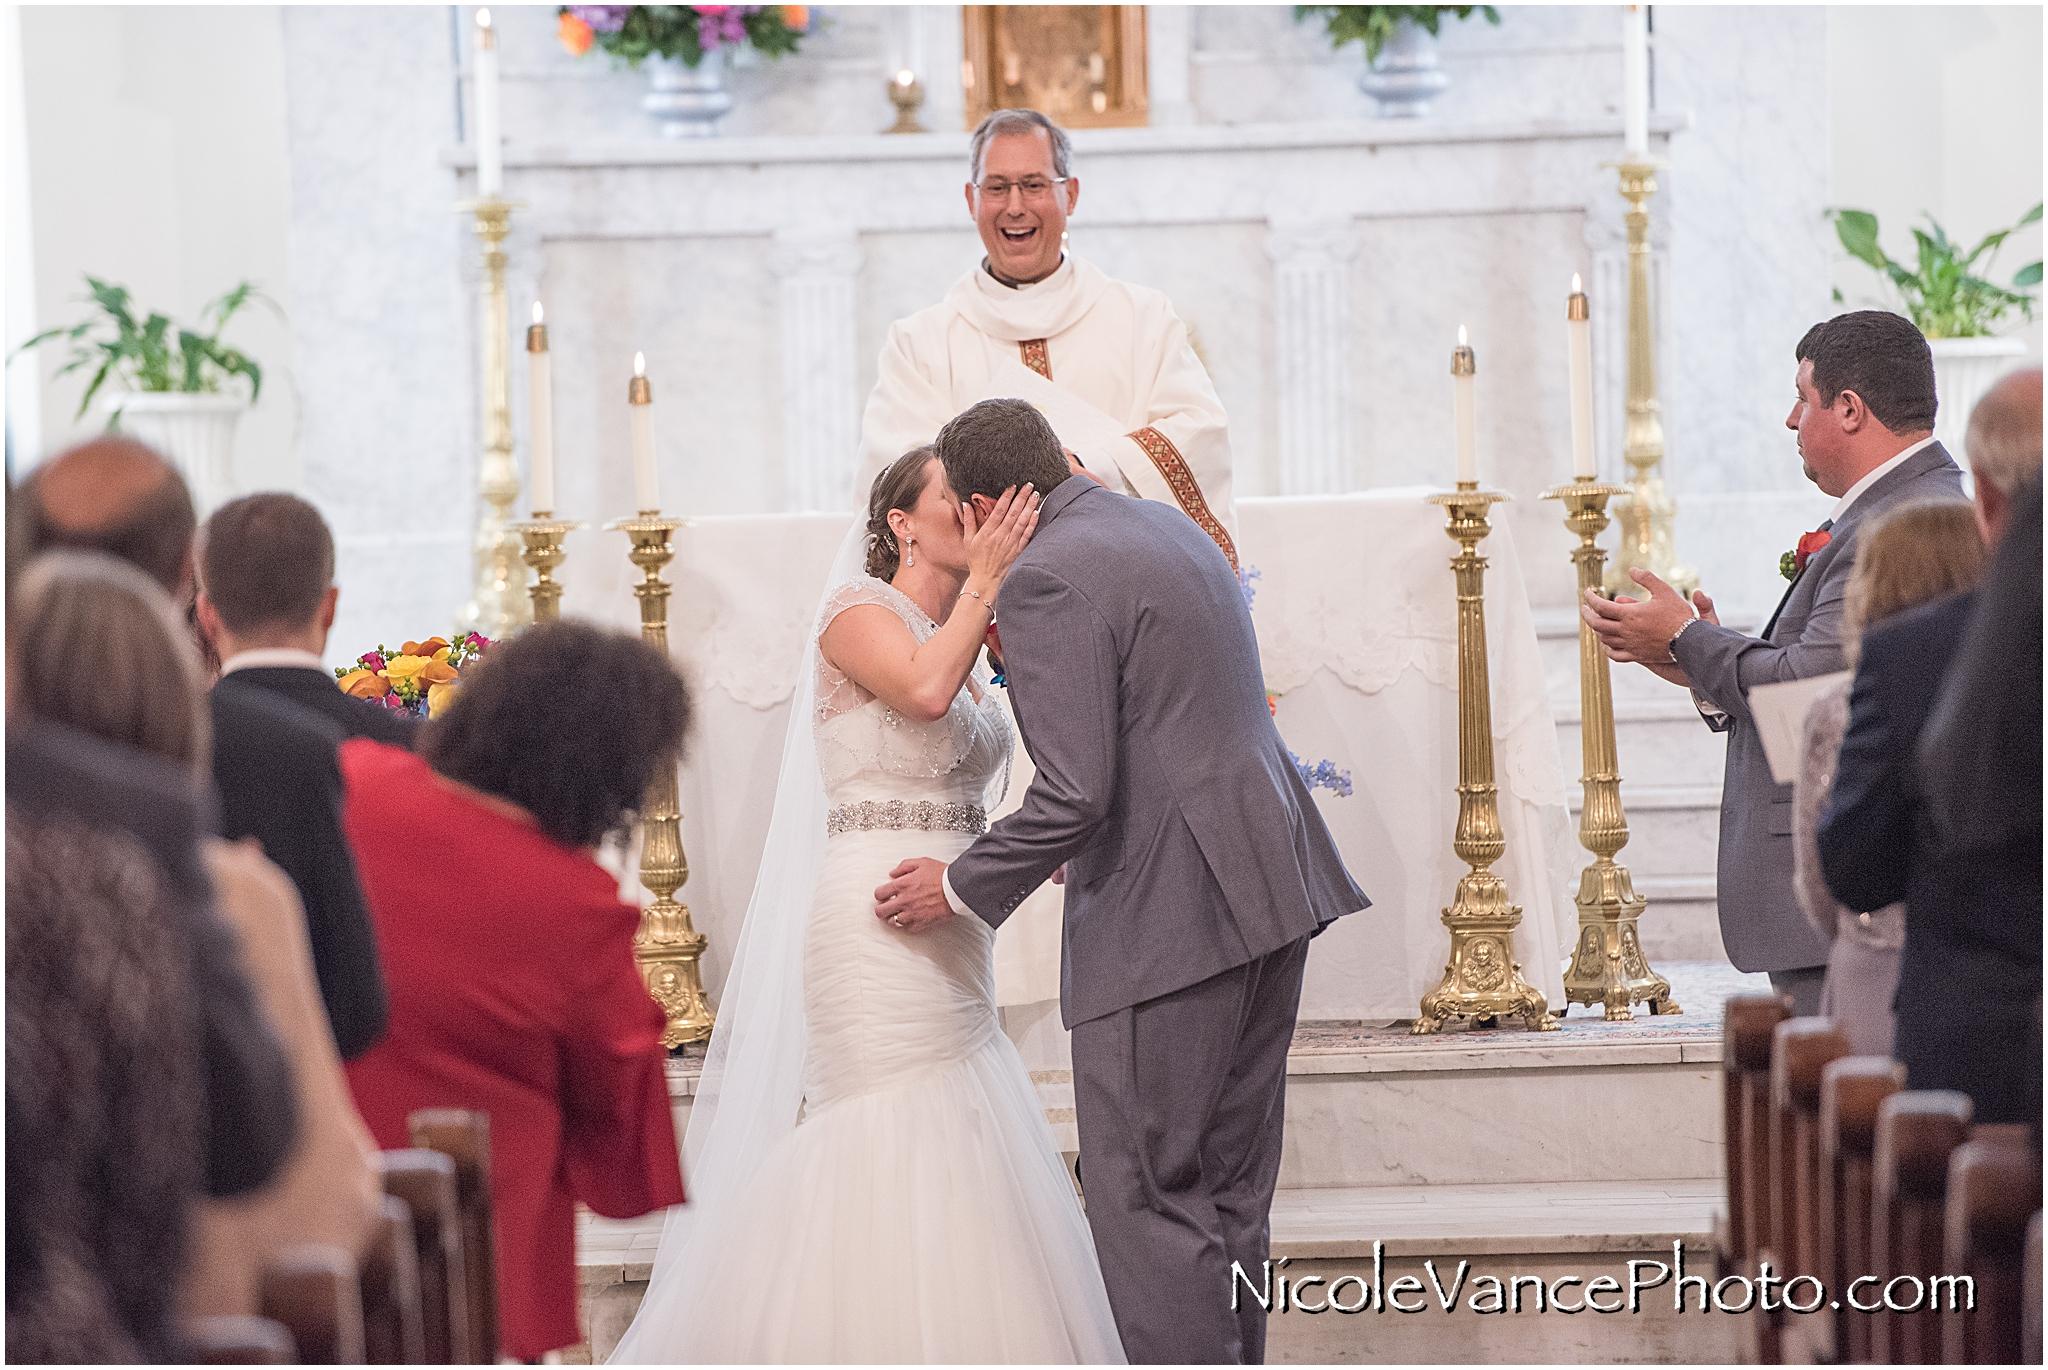 The bride and groom's first kiss during their wedding ceremony at St Peter's Catholic Church in Richmond, VA.